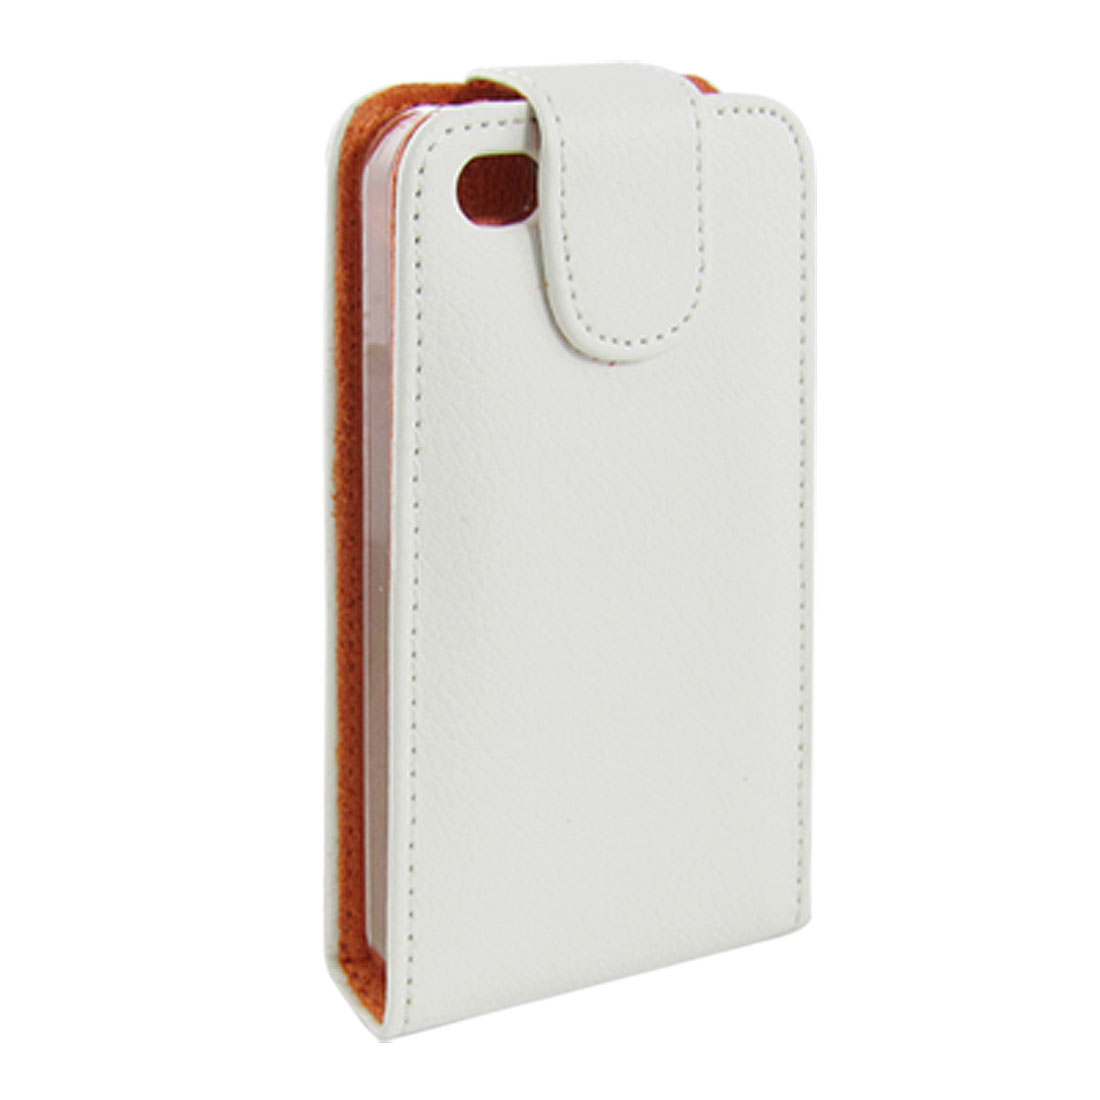 White Magnetic Button Closure Case for iPhone 4G 4